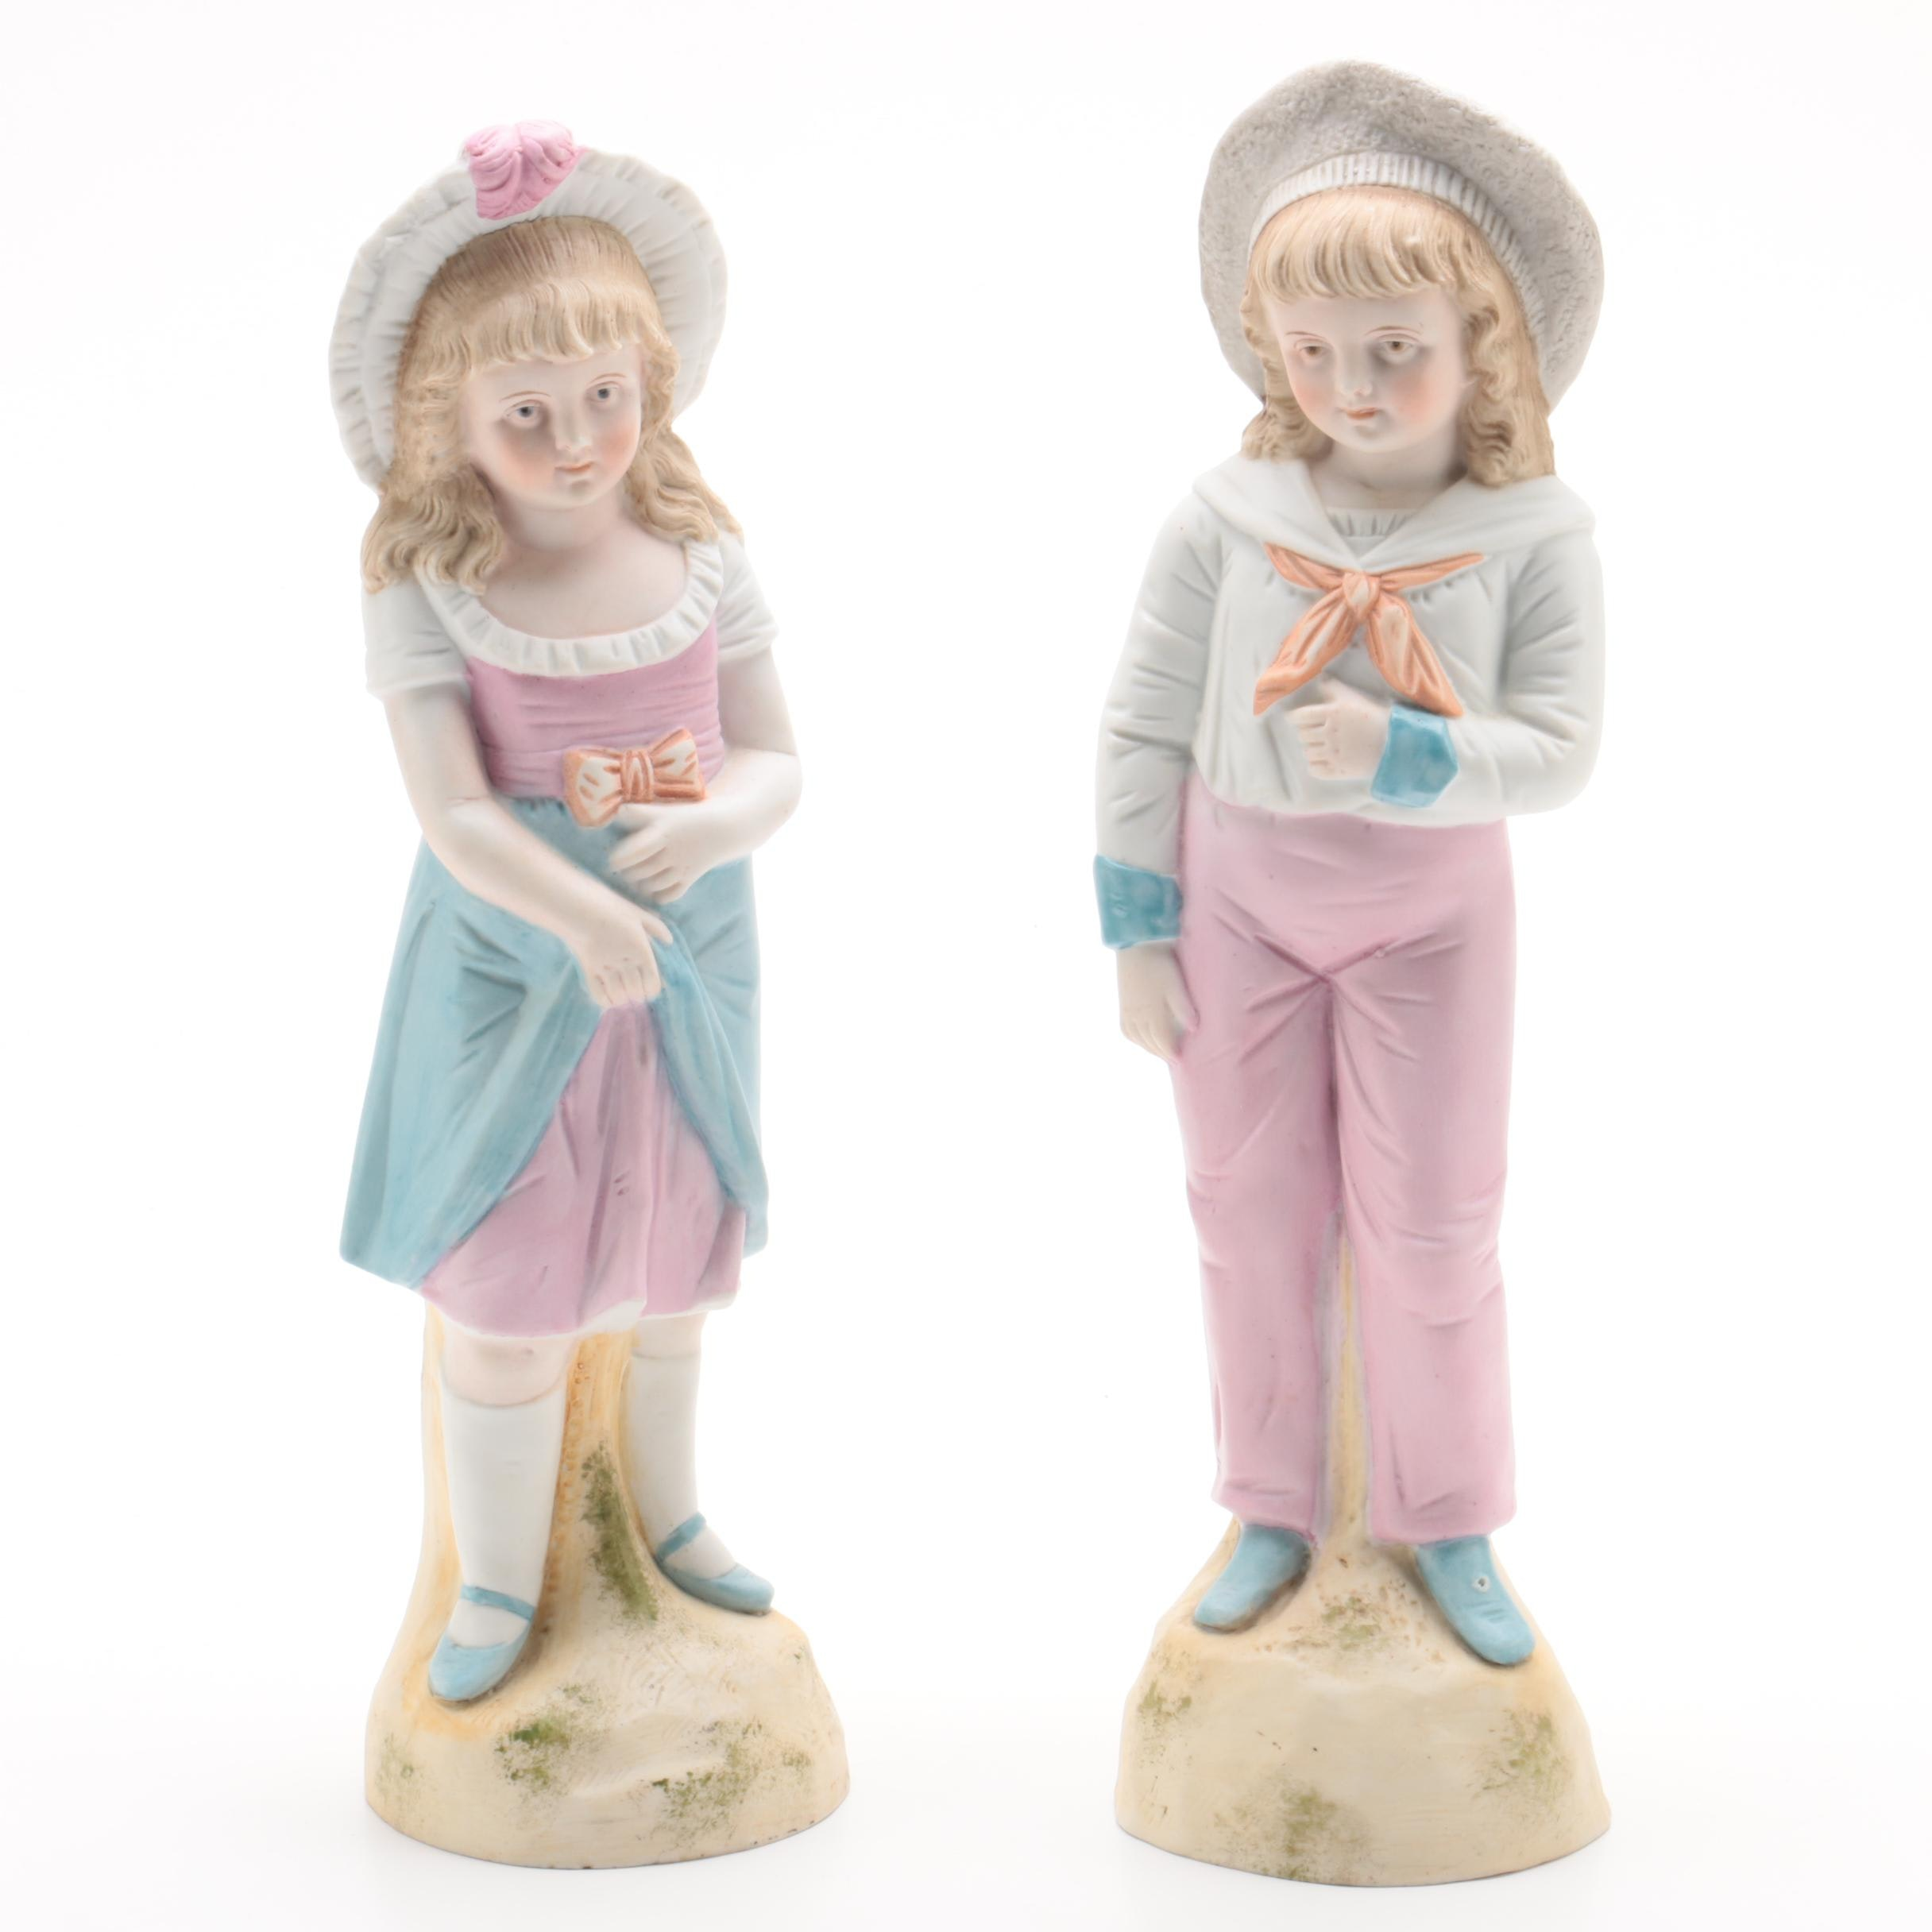 Vintage Hand-Painted Boy and Girl Porcelain Figurines